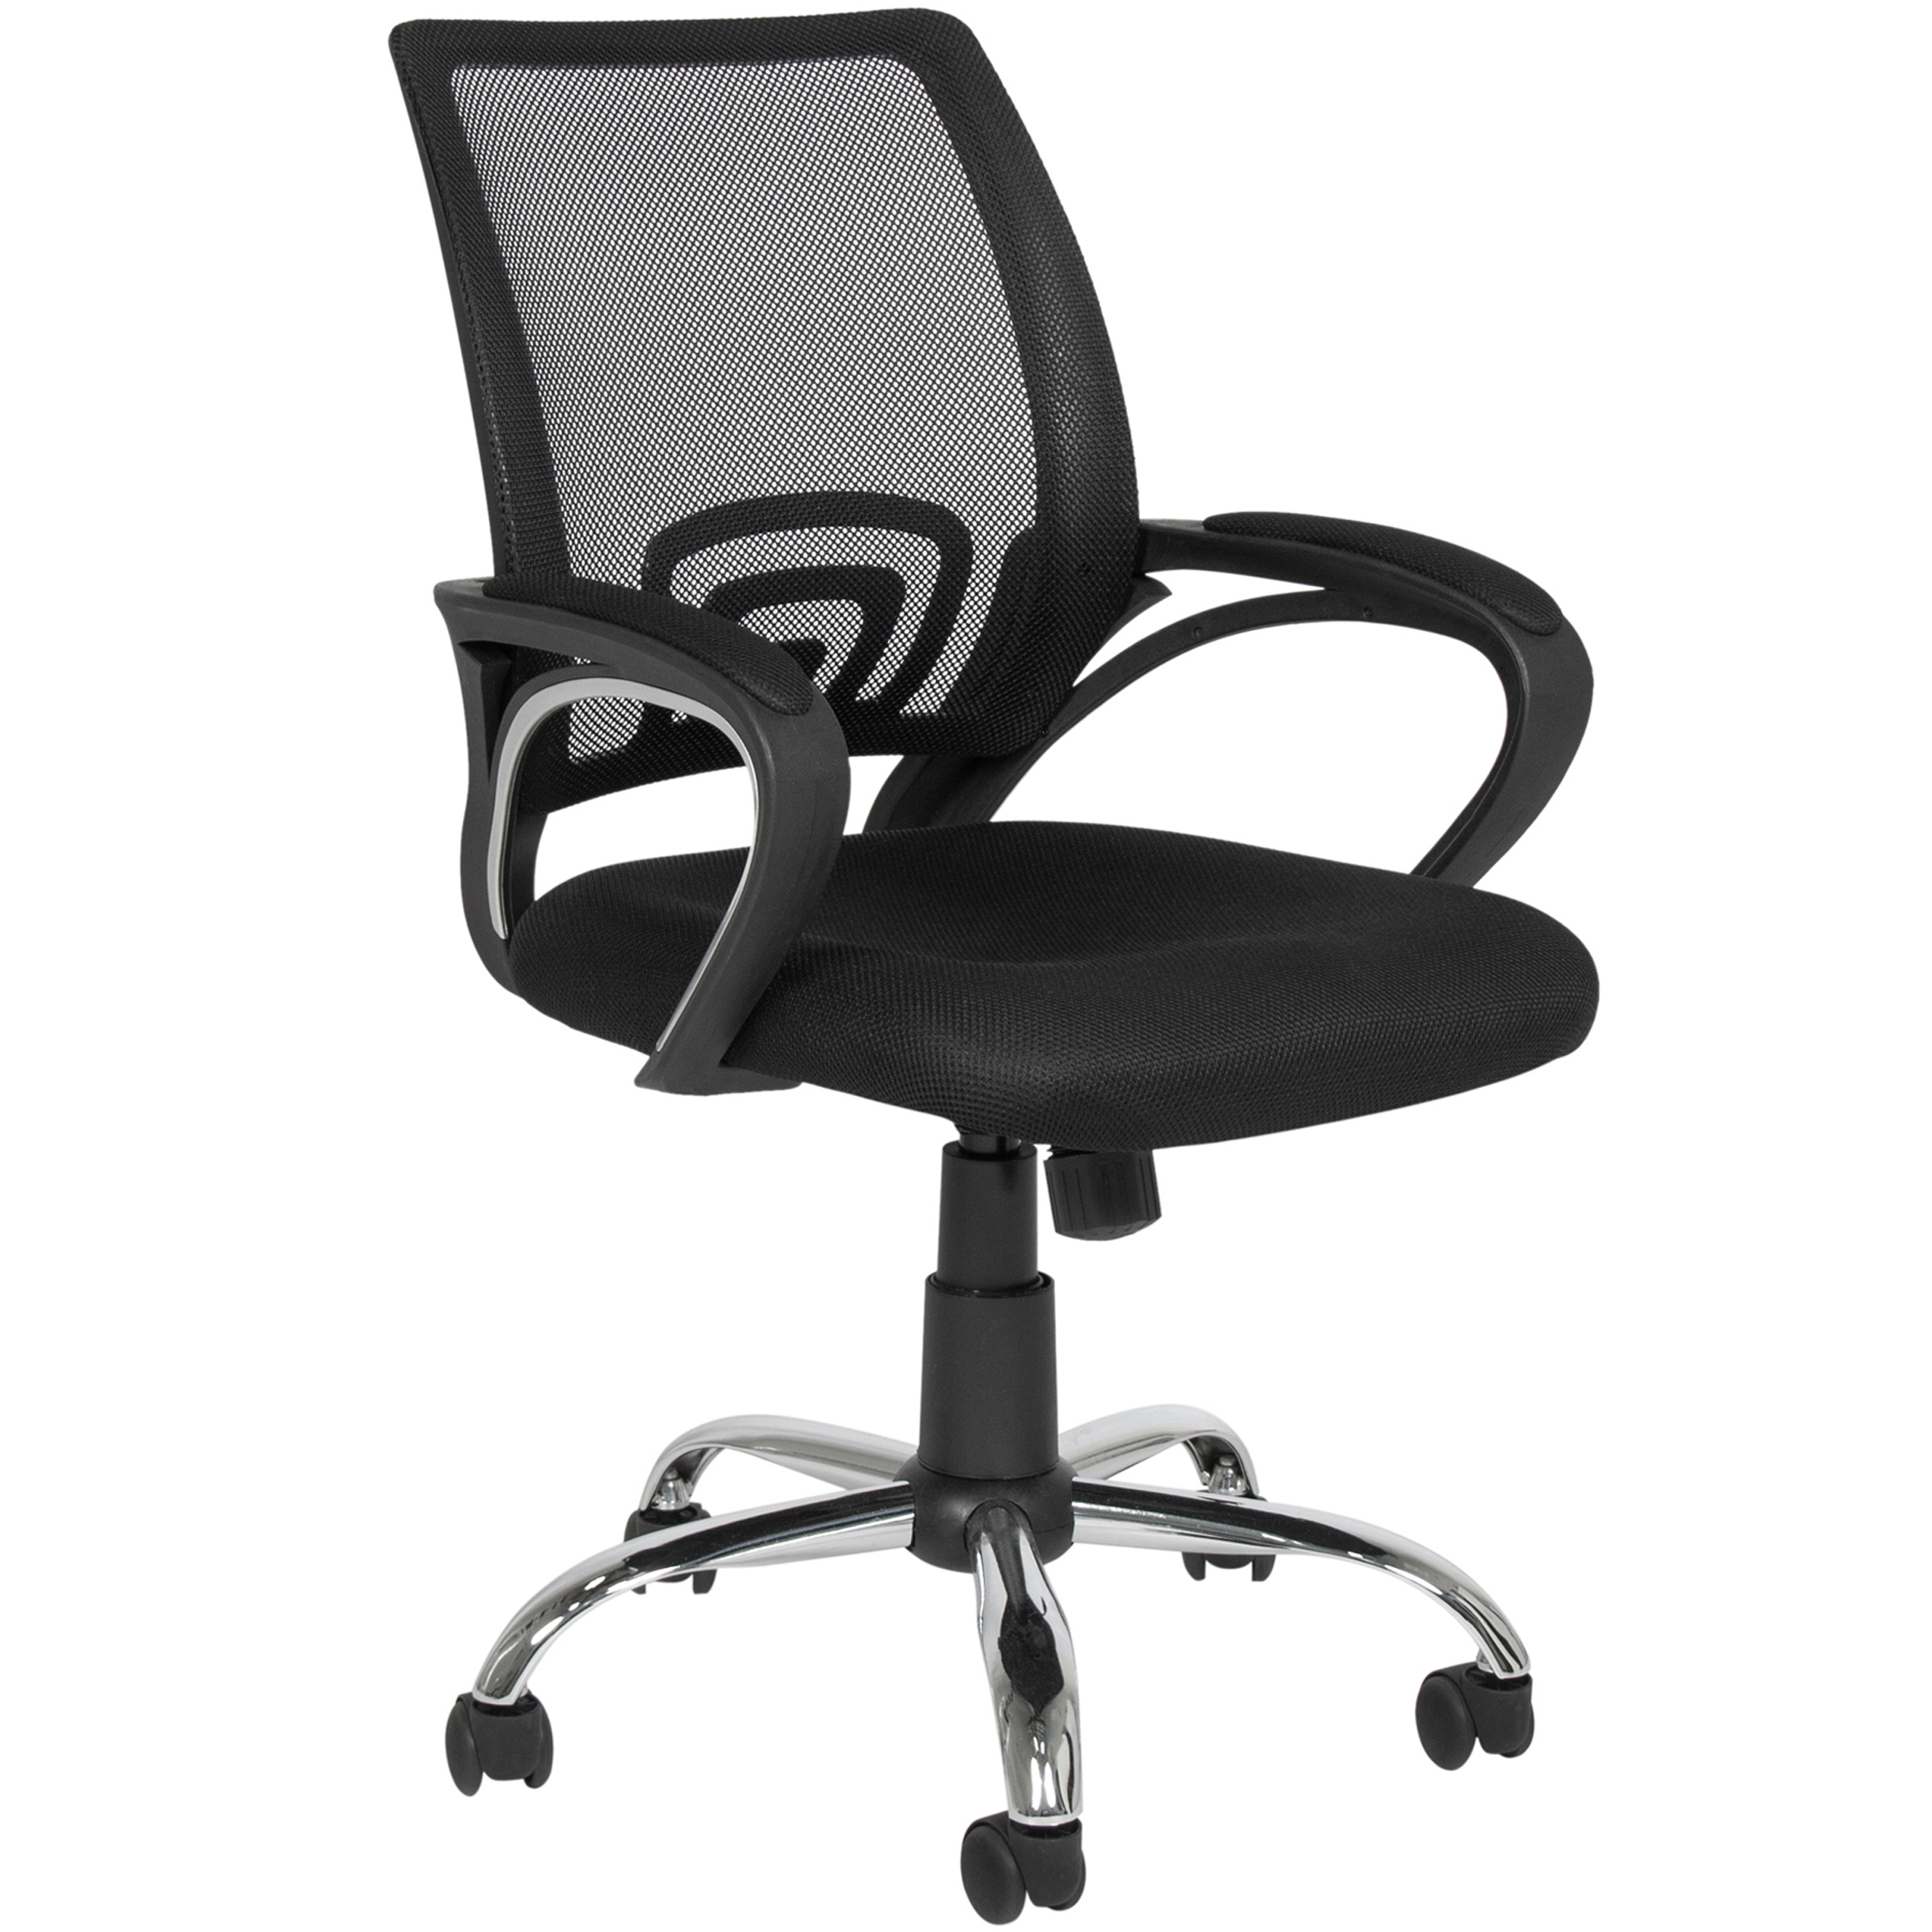 Best Choice Products Ergonomic Computer Home Office Chair W/Mesh Design ( Black W Chrome